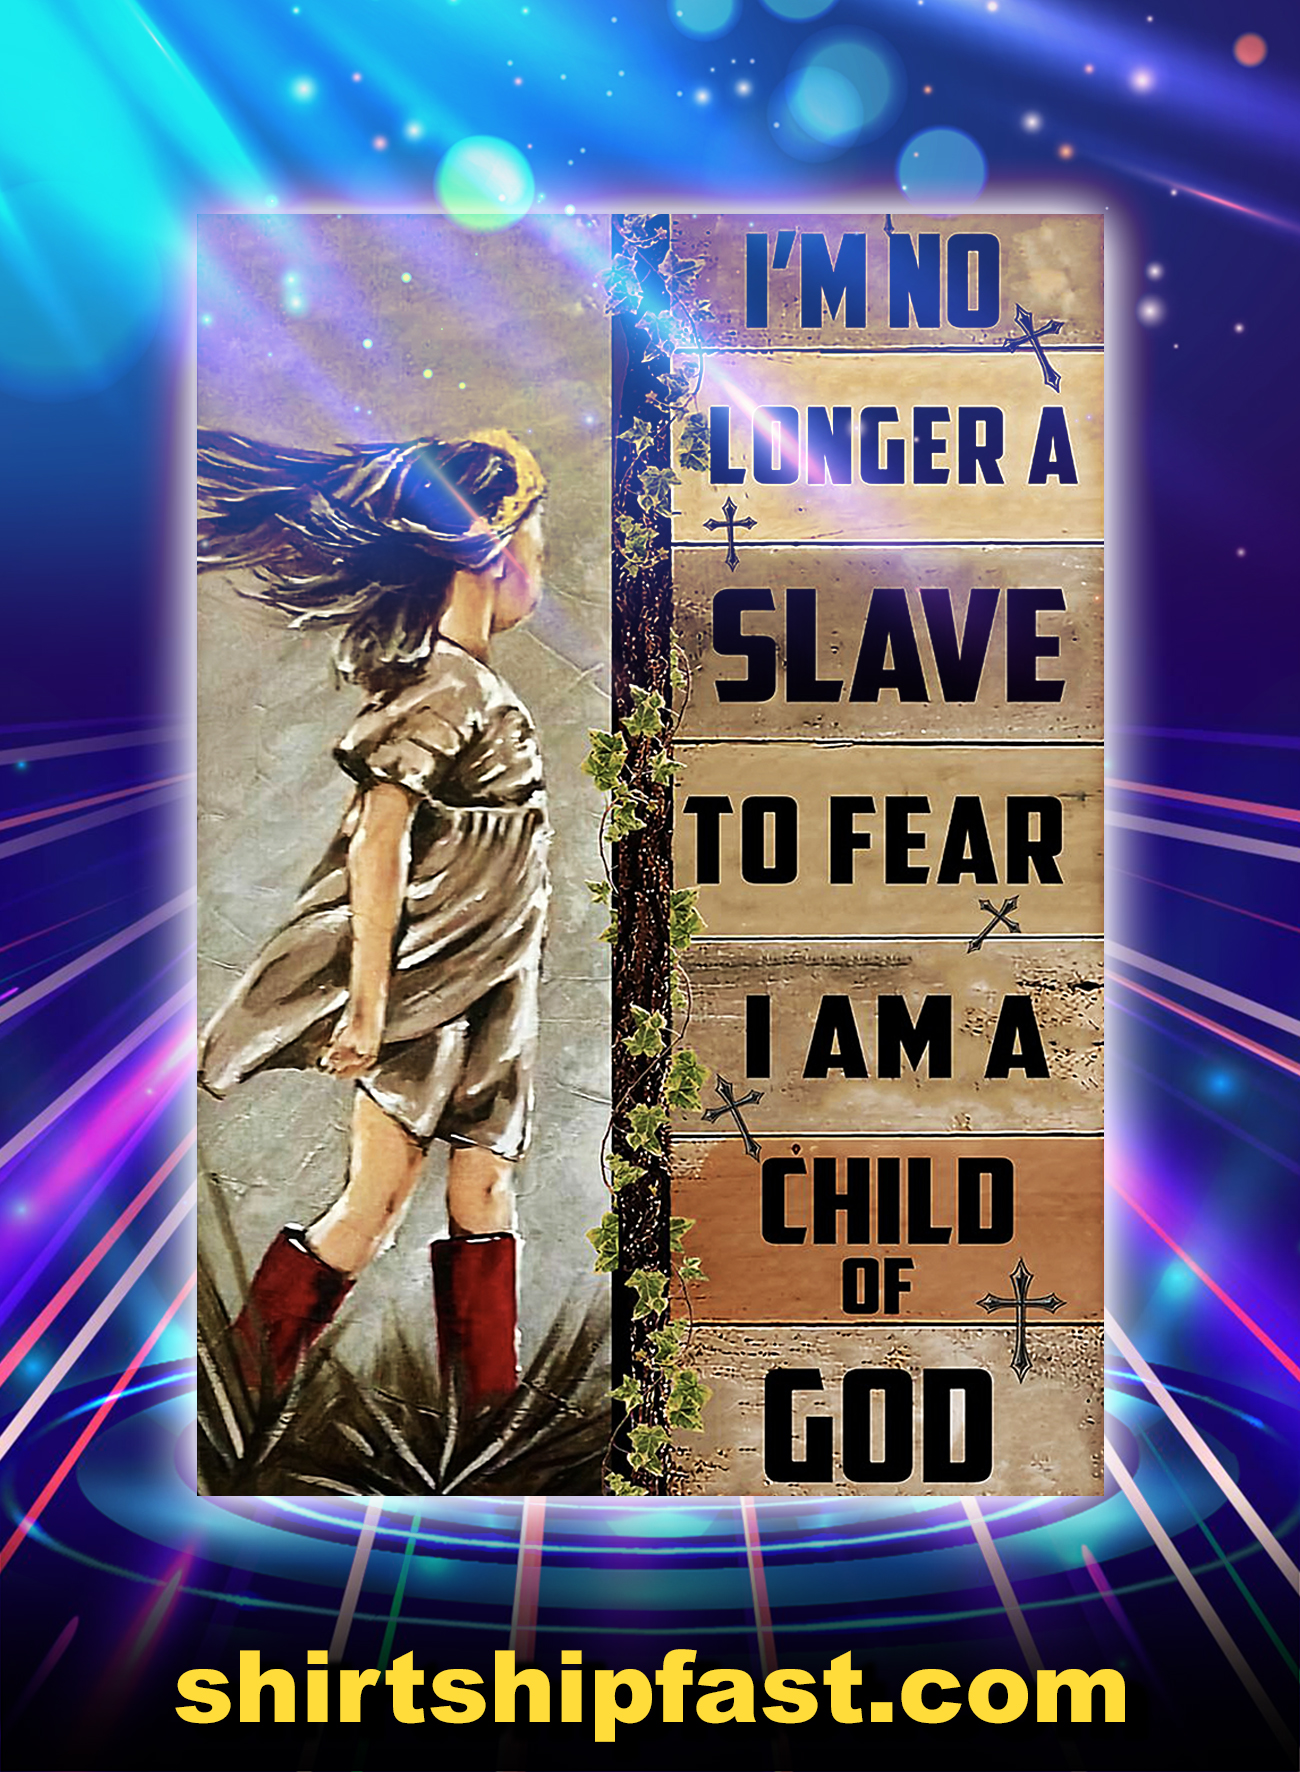 I'm no longer a slave to fear i am a child of god poster - A4